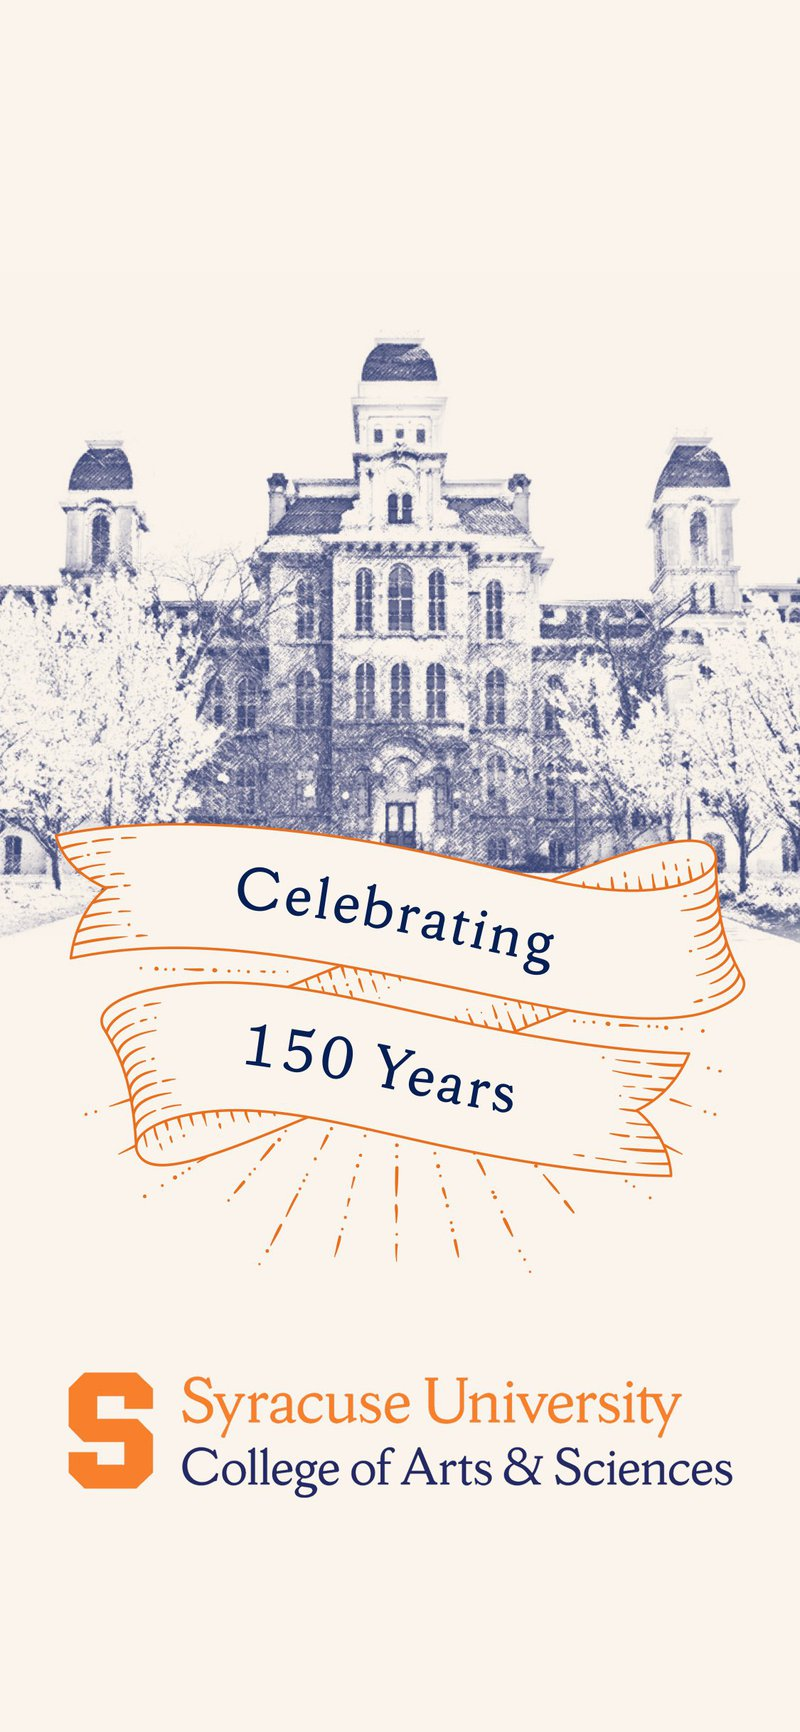 Phone wallpaper shows line sketch of Hall of Languages behind a banner that reads Celebrating 150 Years.